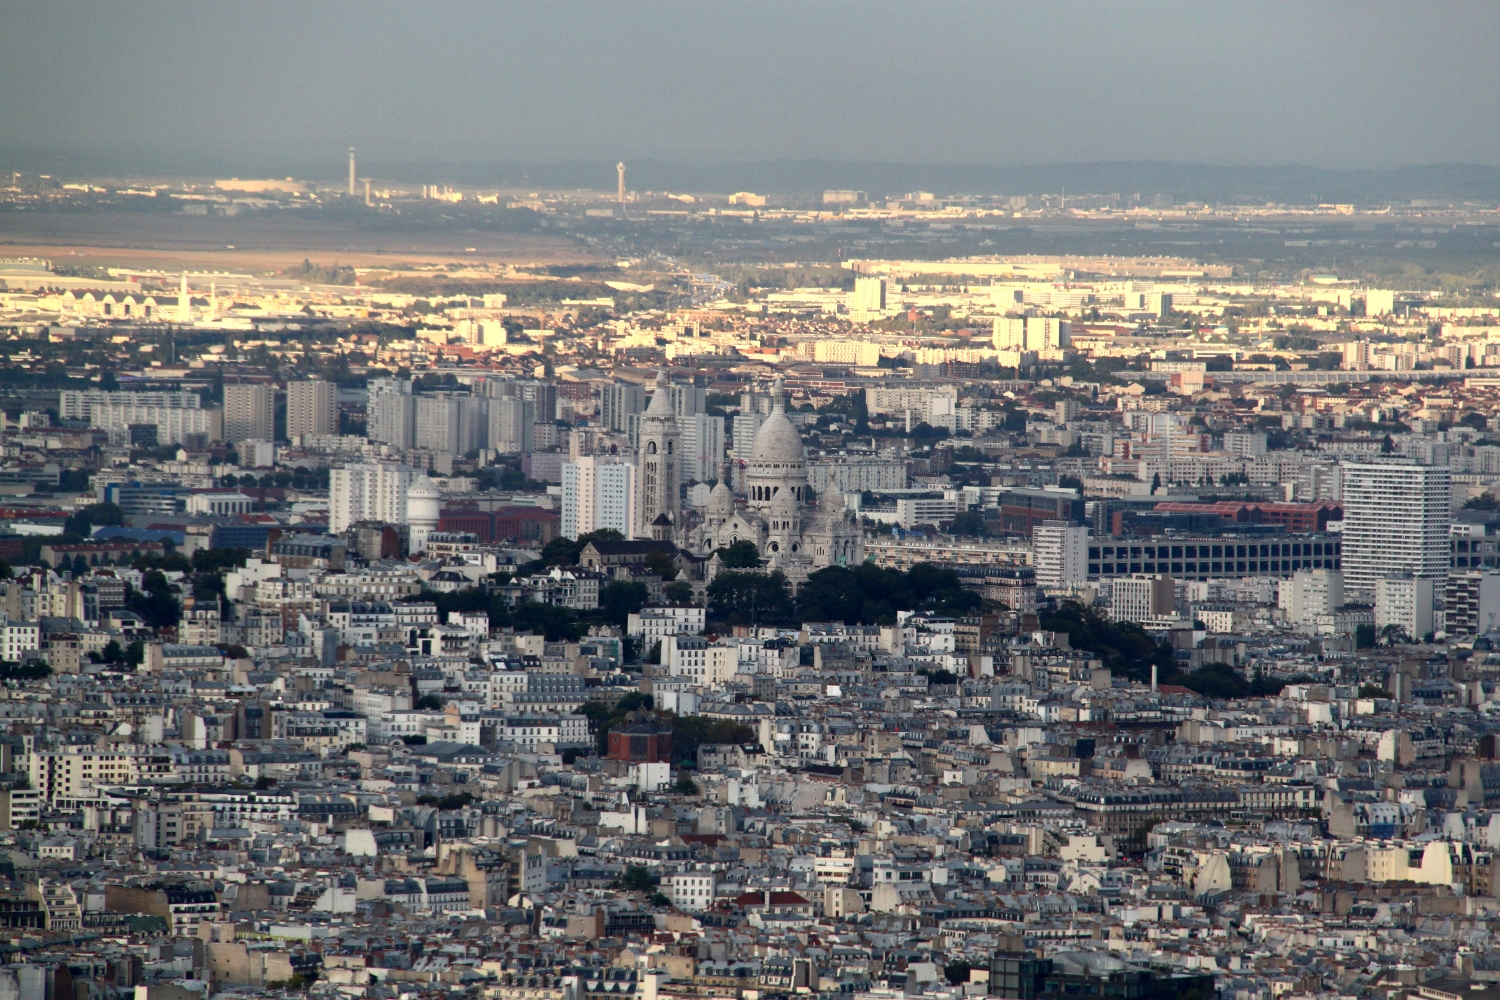 Sacre Coeur seen from the Eiffel Tower